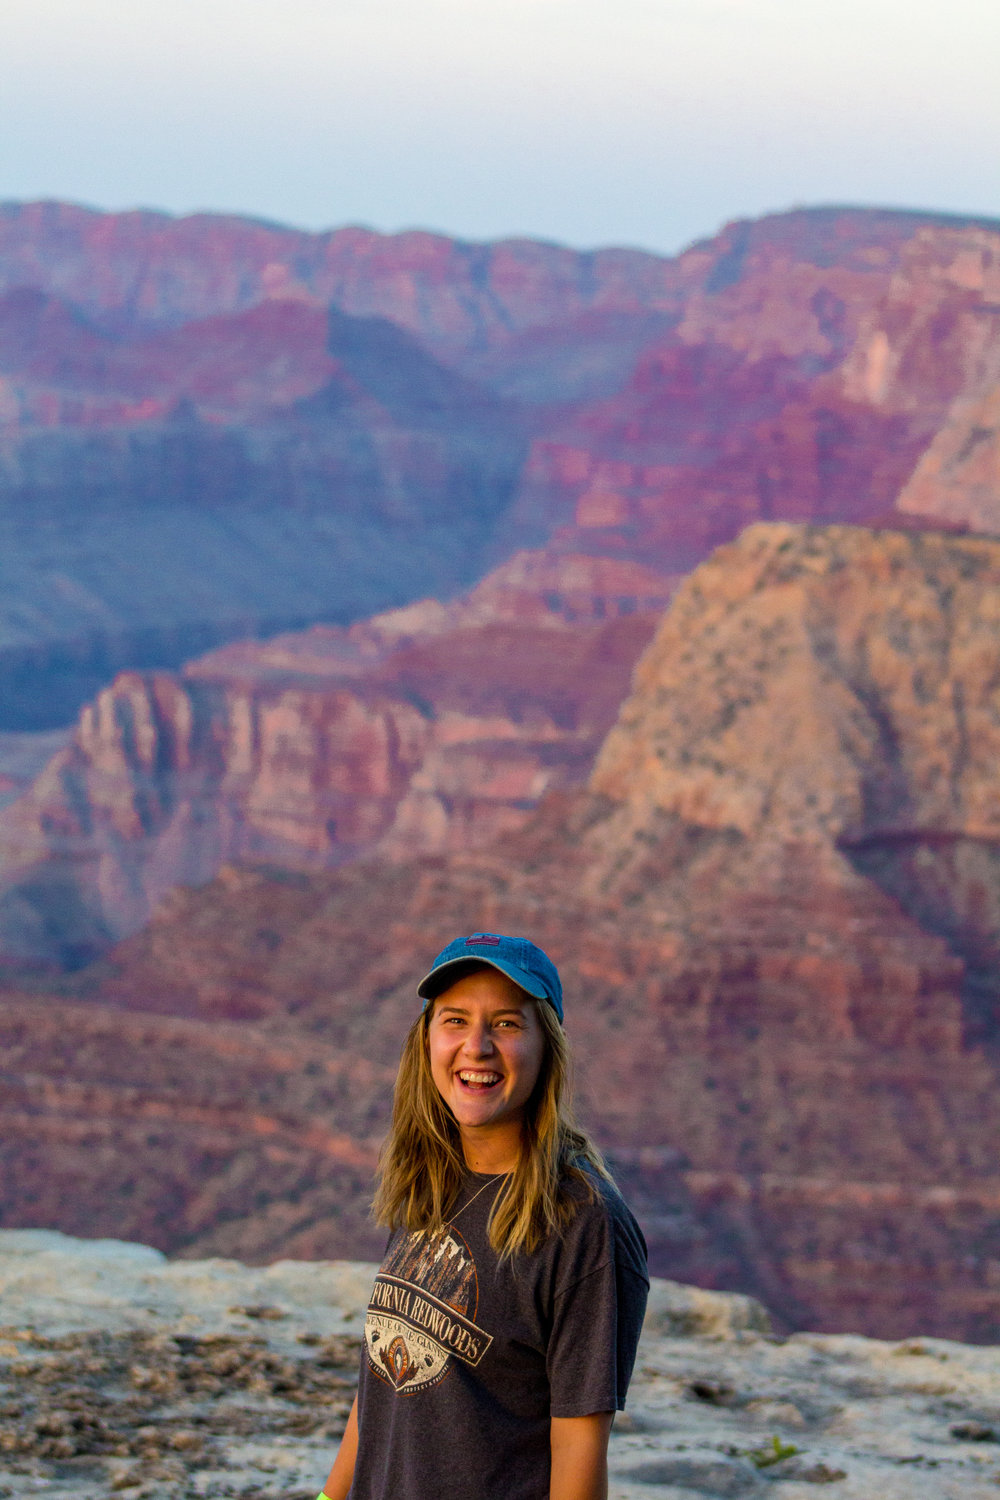 Joelle exploring the vastness of the Grand Canyon National Park, Arizona, USA